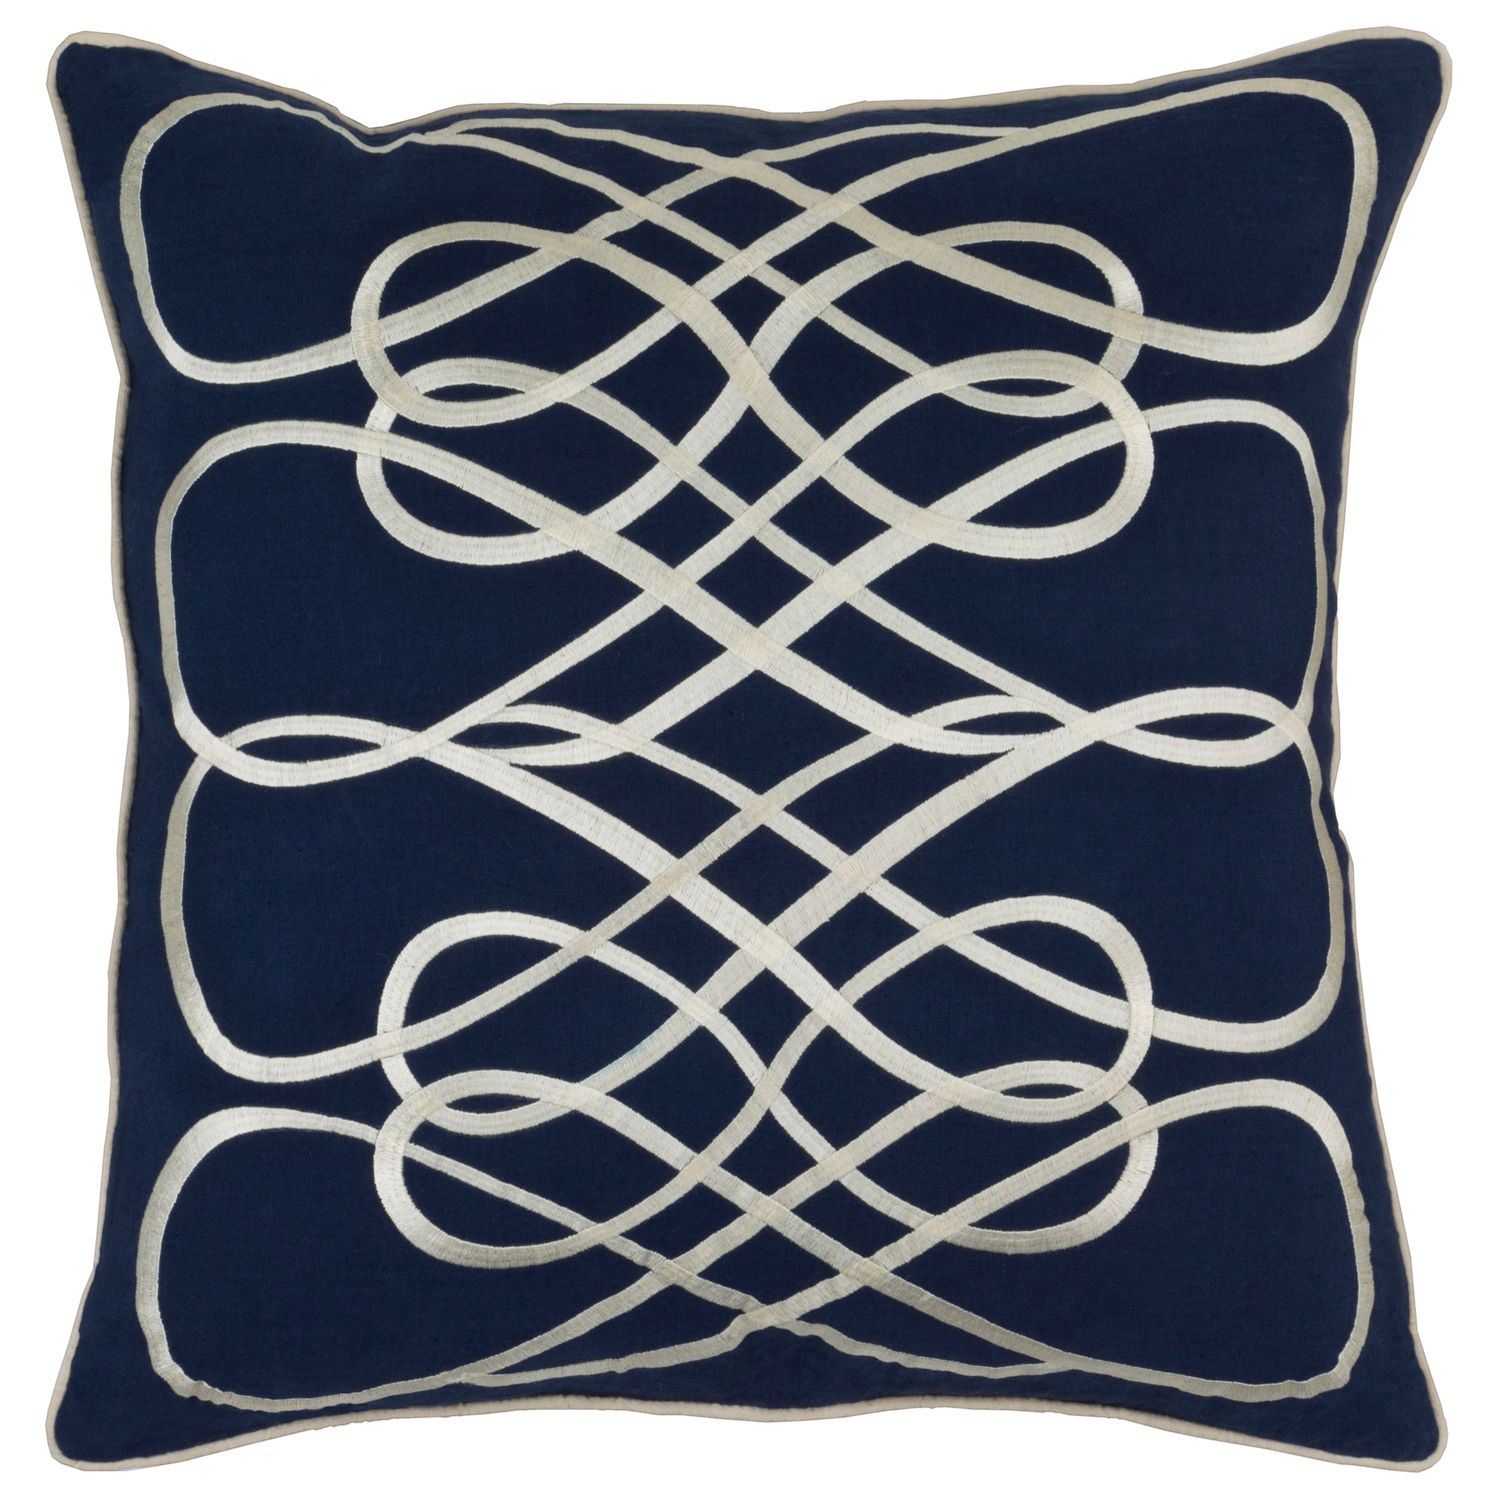 Surya Leah Navy Decorative Pillow @Laylagrayce Throw Pillow Coversdecorative